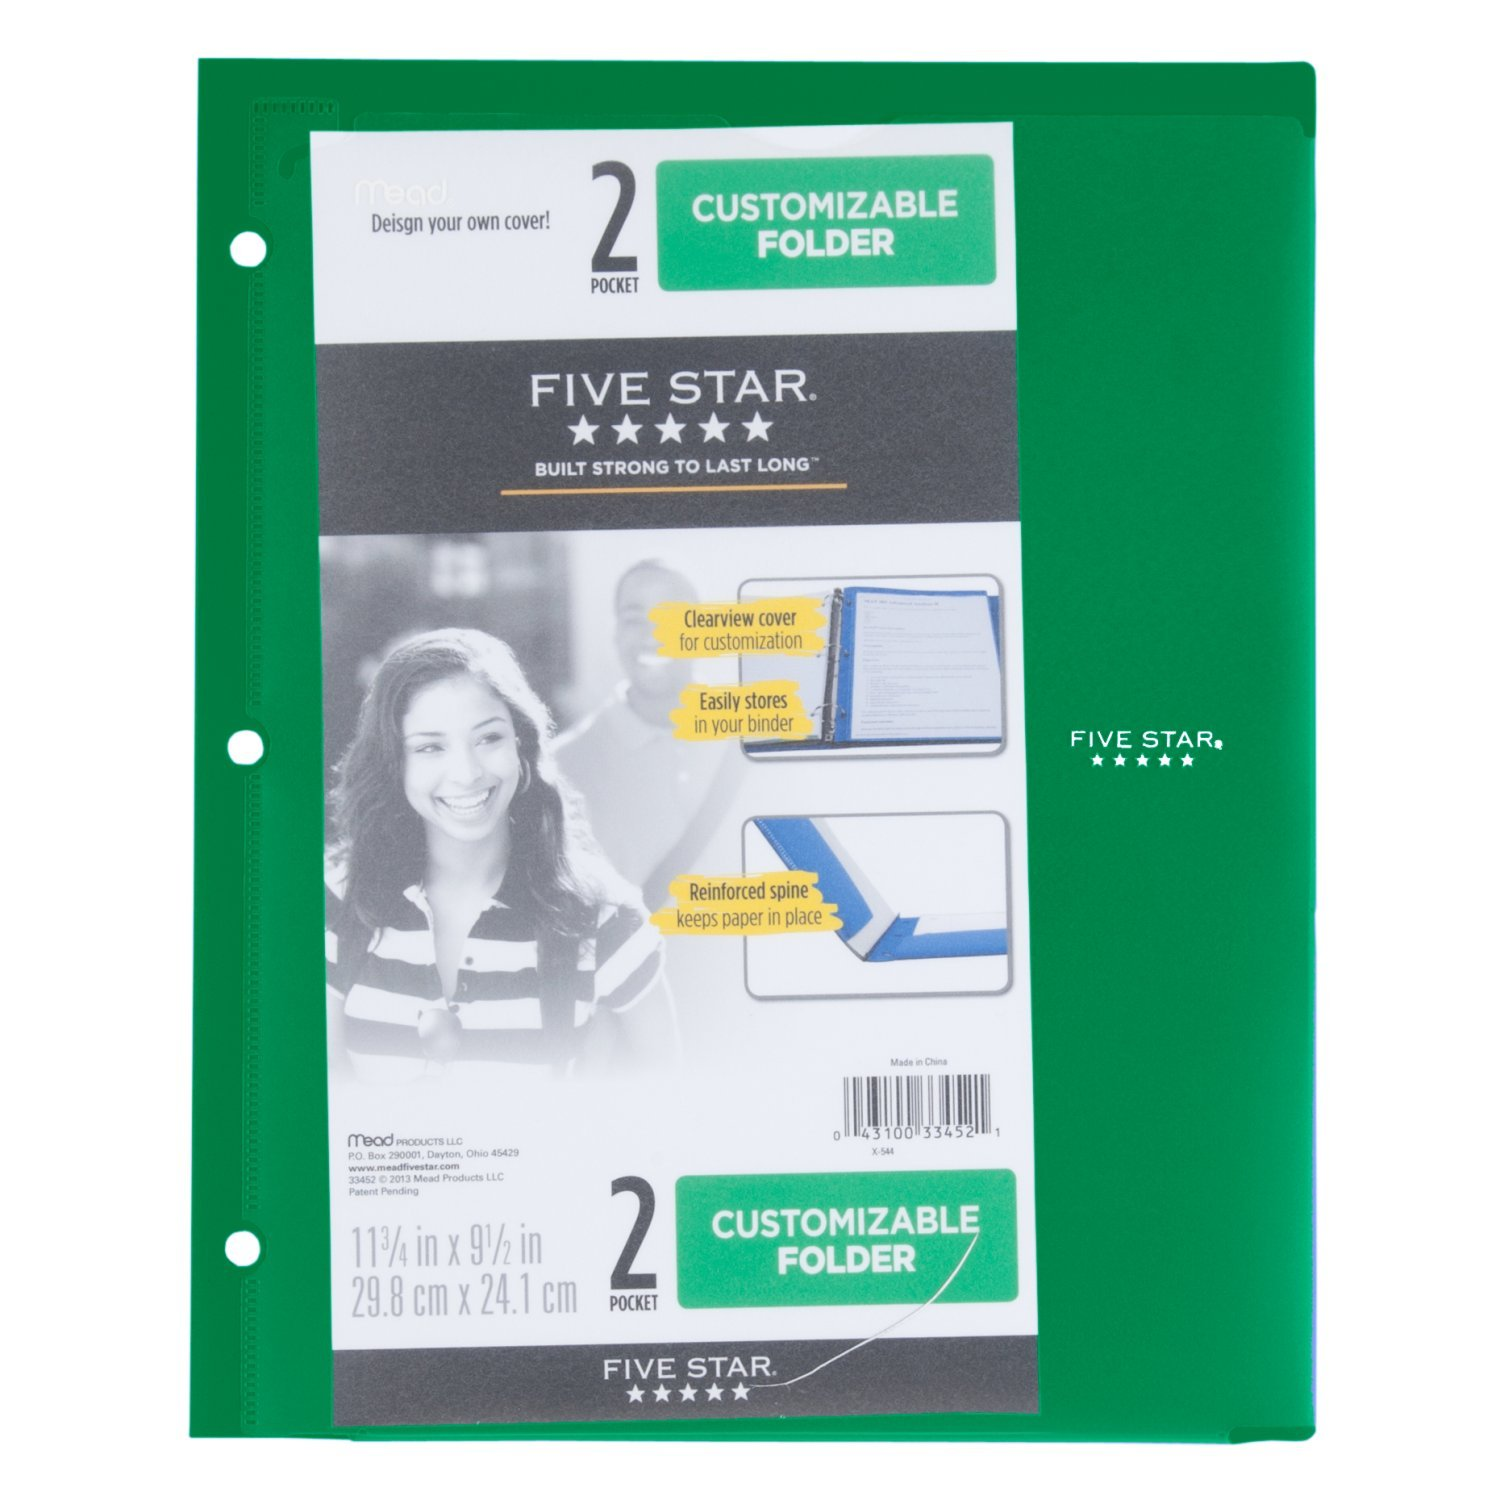 Five Star 2 Pocket Folder, Customizable Cover, Folder with Pockets, Fits 3 Ring Binder, Plastic, Black, Red, Green, Blue, 4 Pack (38098) by Five Star (Image #5)